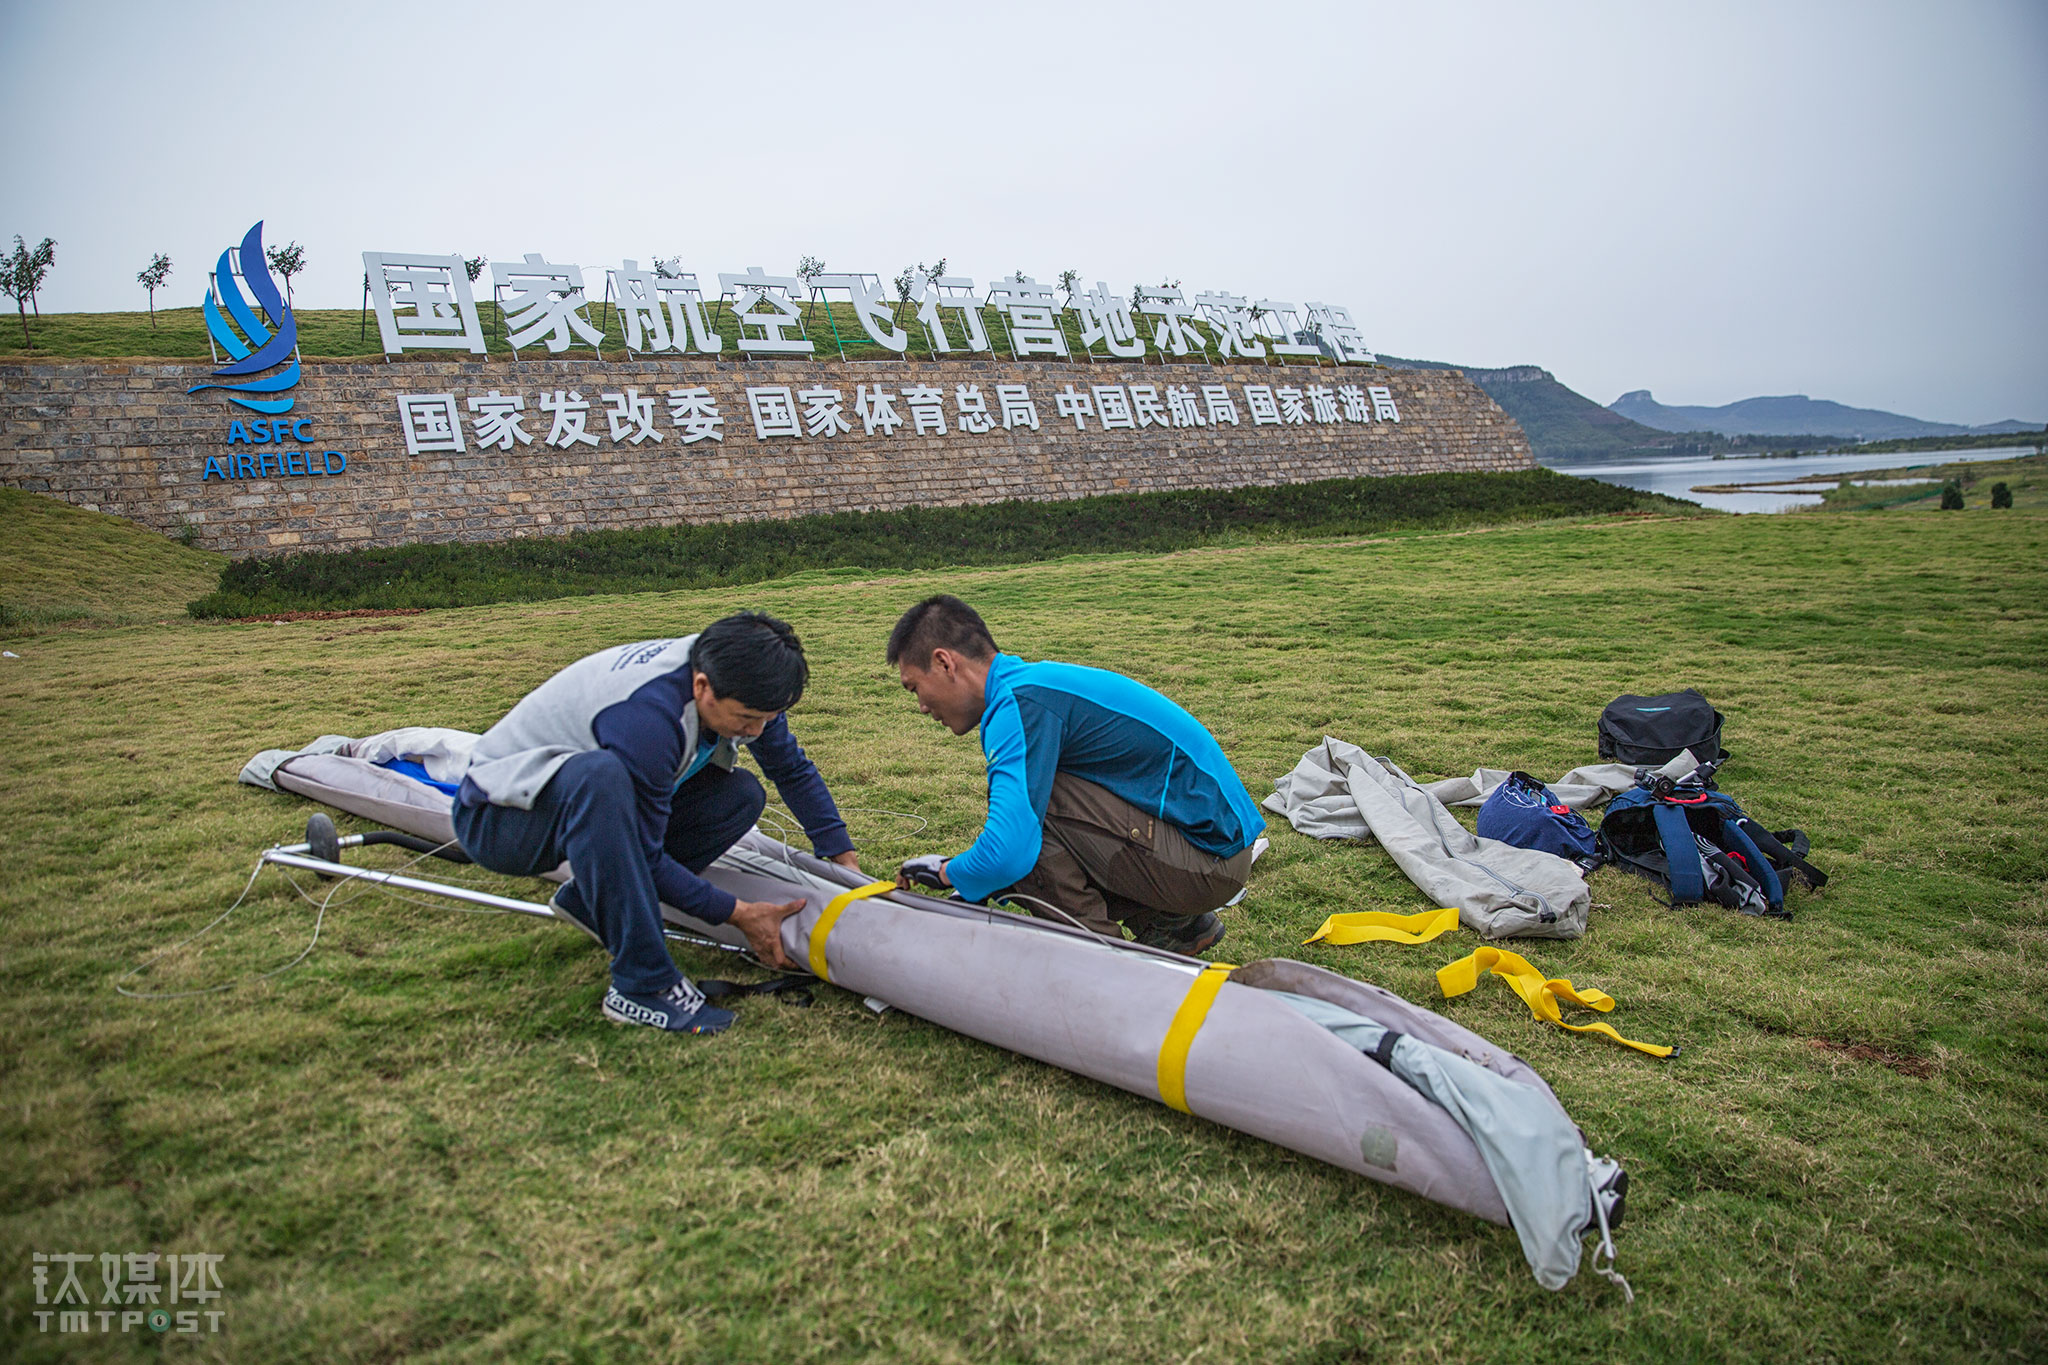 "After a few minutes, the aircraft landed safely on the ground. These air sports lovers came to experience these couple of minutes' excitement. More and more young people are attracted to this ""blue temptation"". Paragliding, for instance, its elementary training alone costs ¥9,000, while a complete set of basic paragliding equipment would cost between ¥30,000 to ¥40,000. As for the charge of powered aircrafts, it starts from¥50,000. If they want to upgrade their equipment and have a higher level of training, the cost would climb up. Besides financial cost, the time cost is also evident."